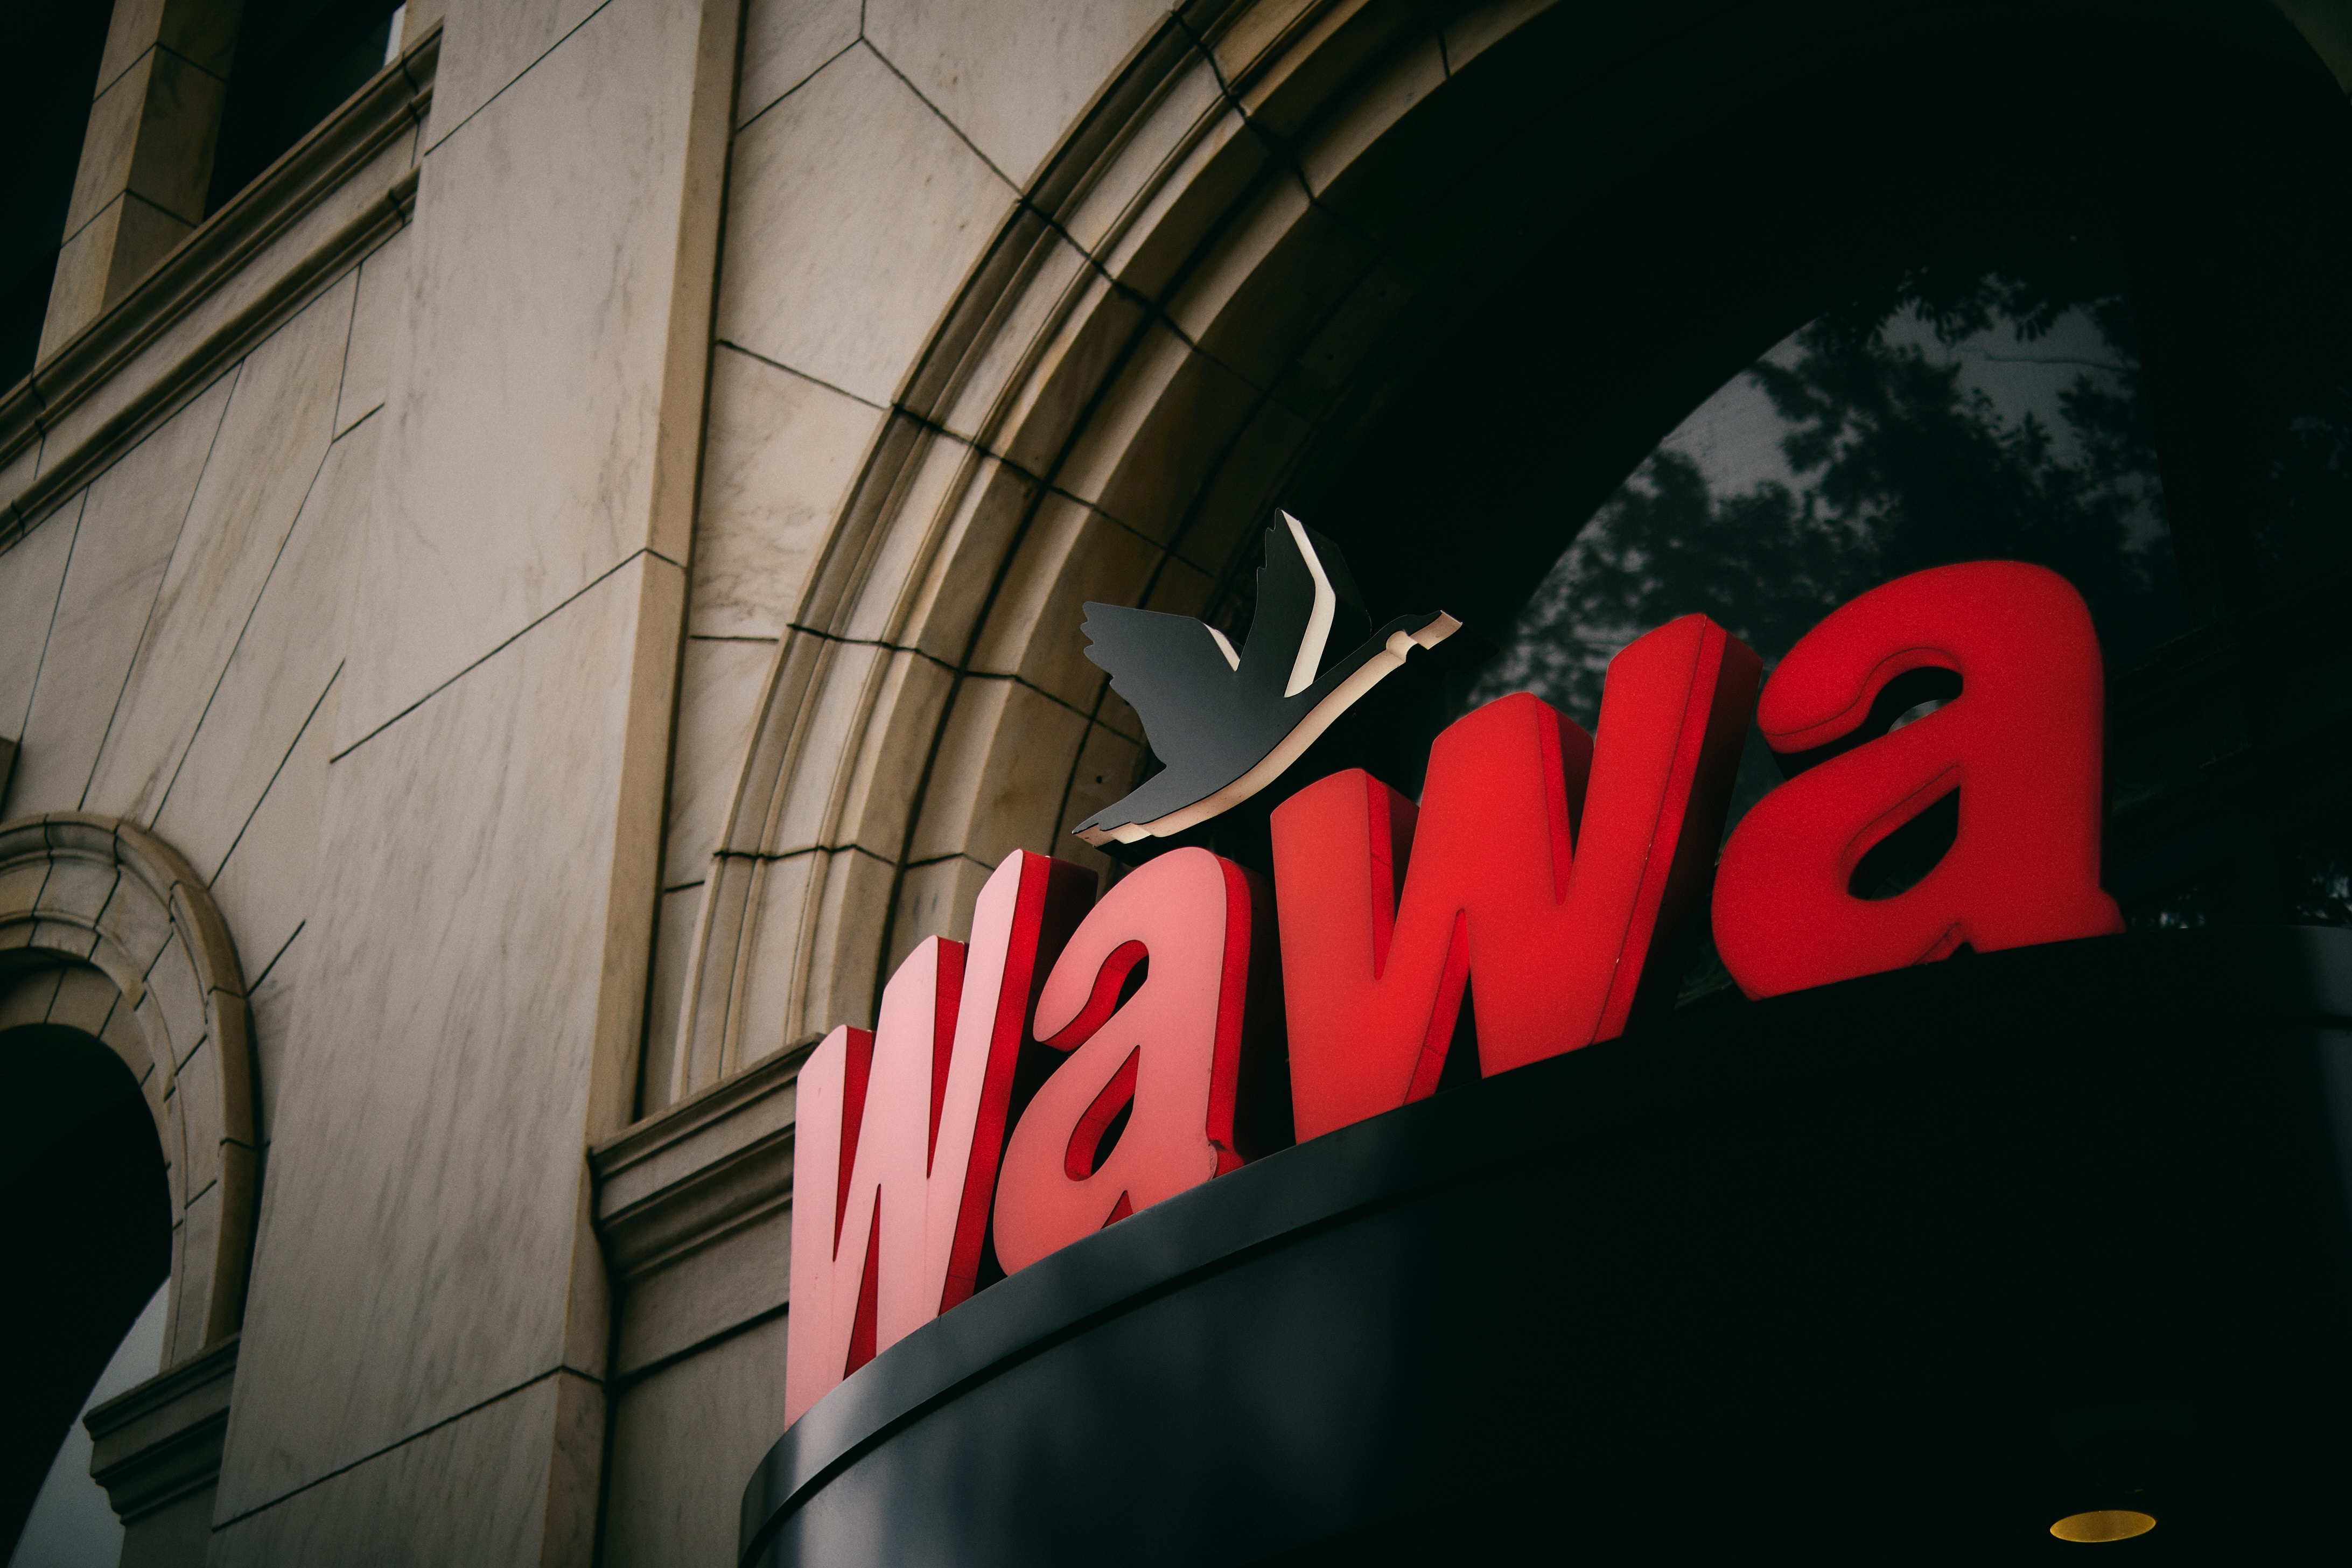 christian lambert NHhpQ nJcuc unsplash - Wawa Announces Data Breach Potentially Affecting All Locations